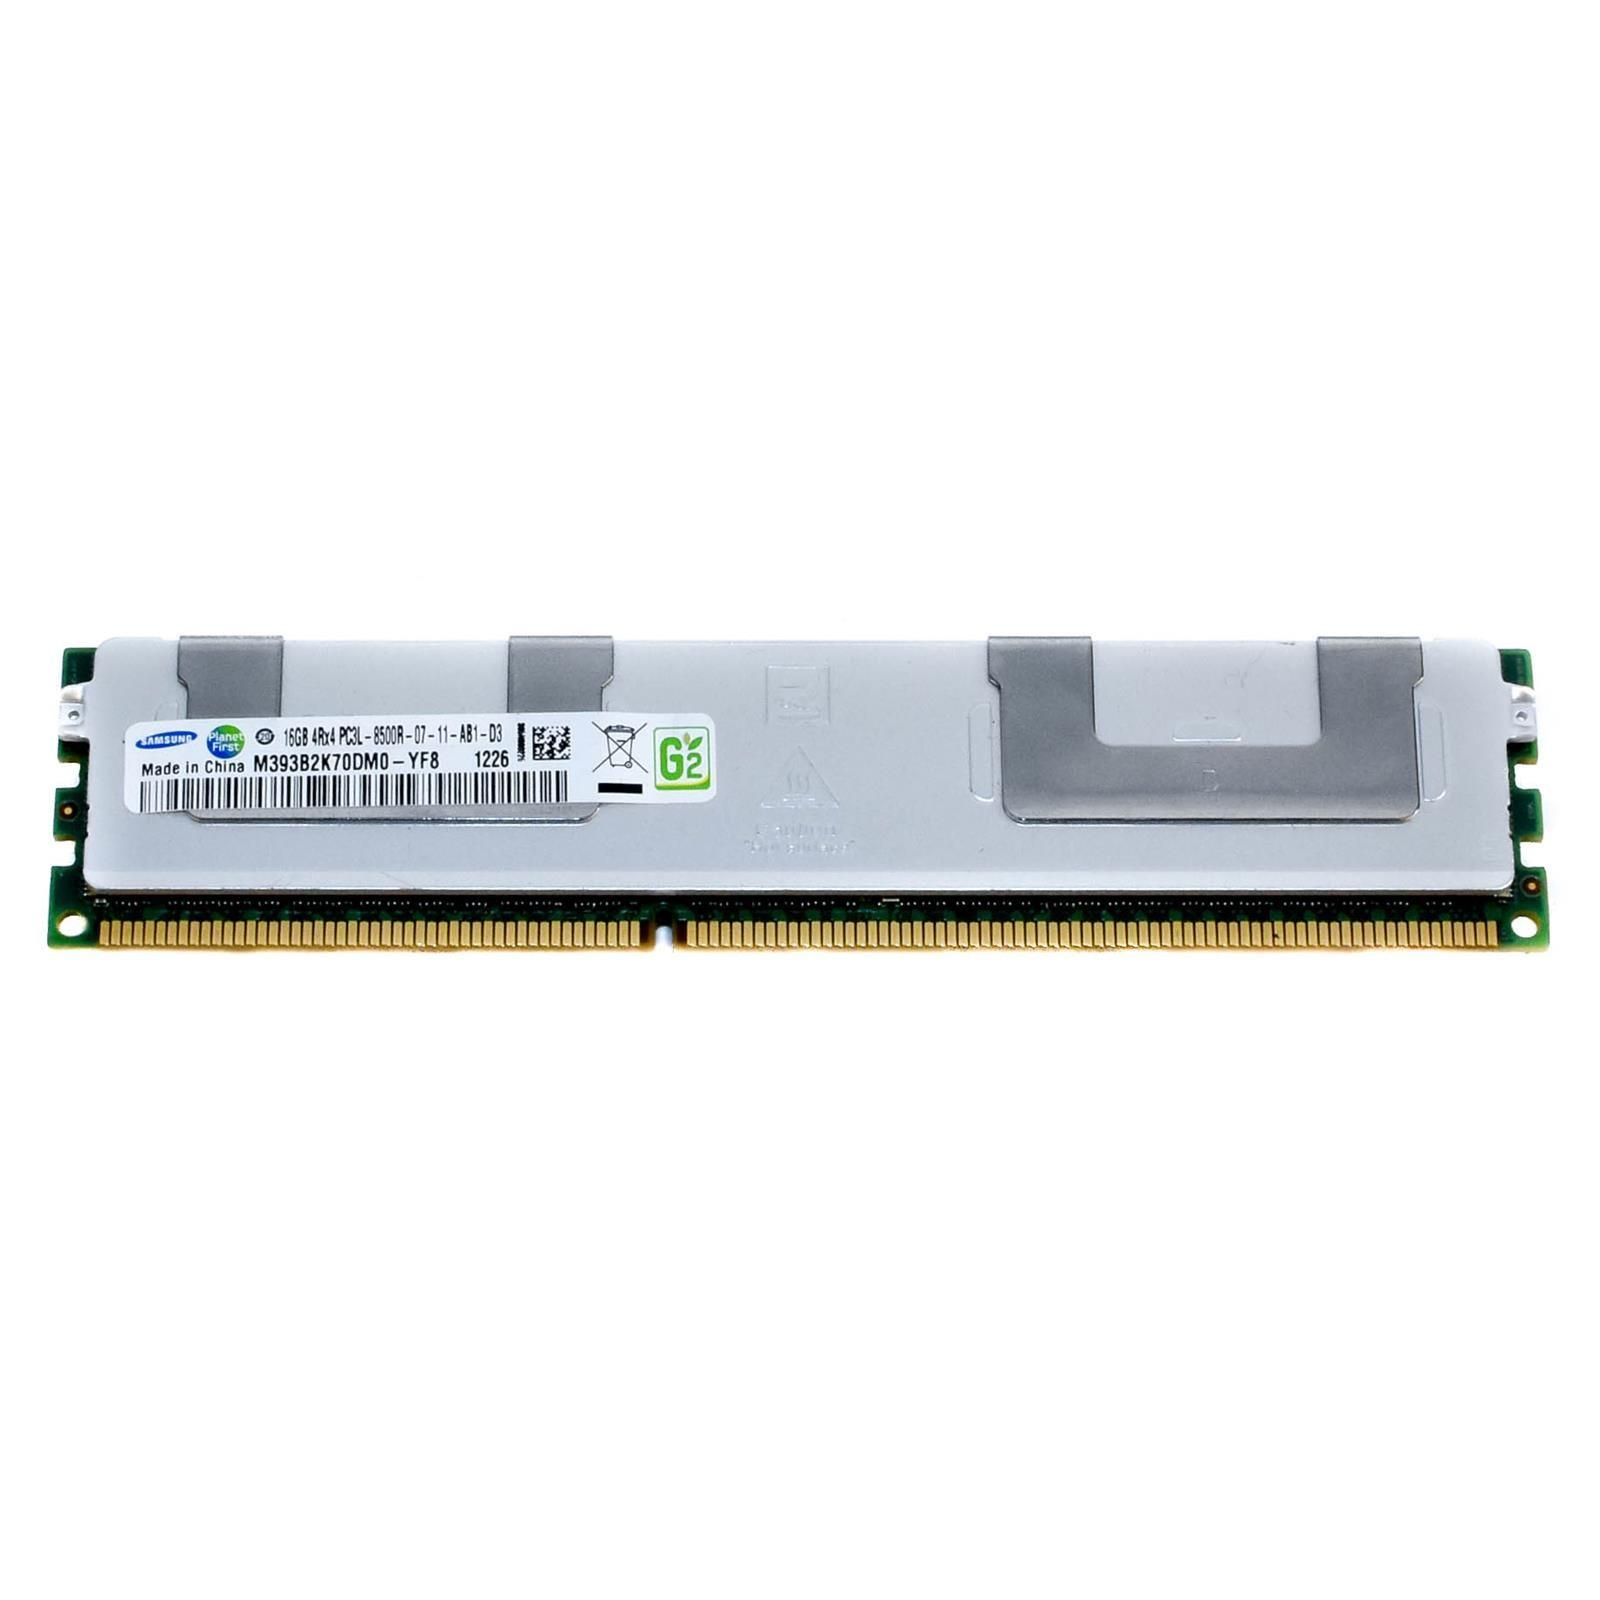 16GB PC3-8500R DDR3 1066MHz ECC Registered